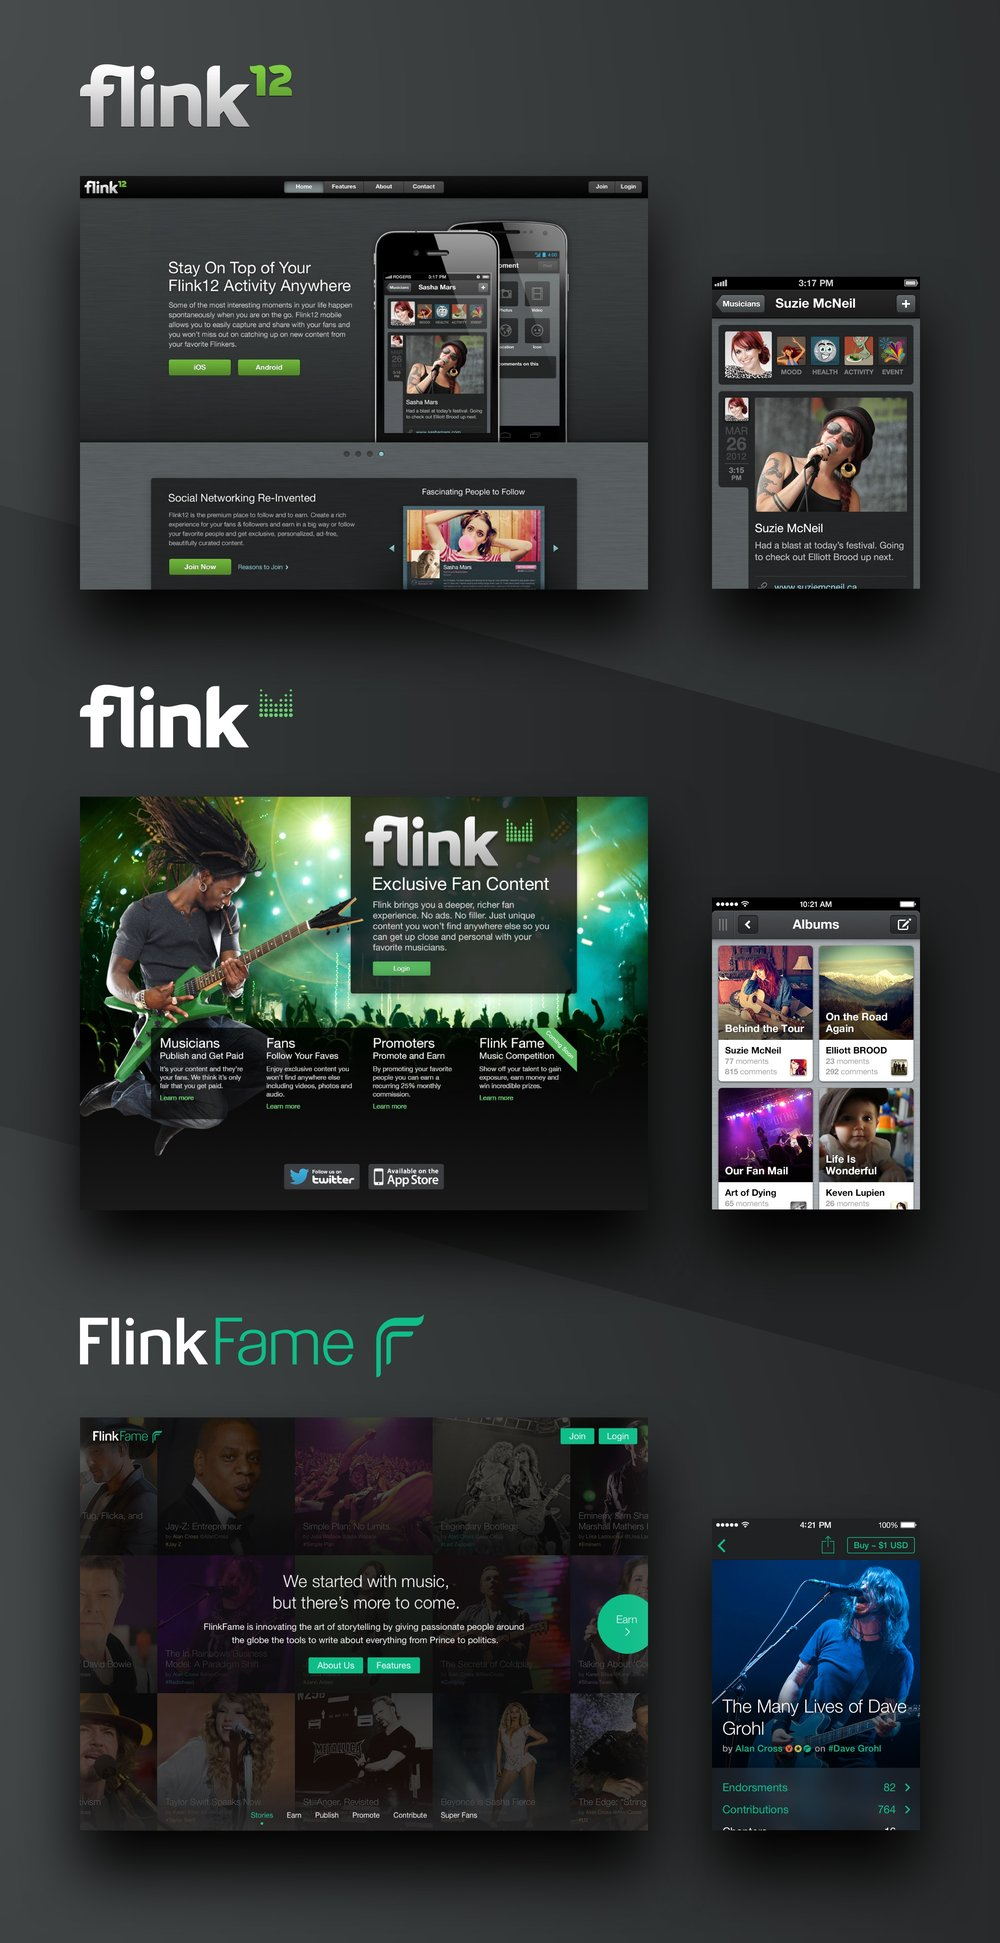 The many faces of Flink.